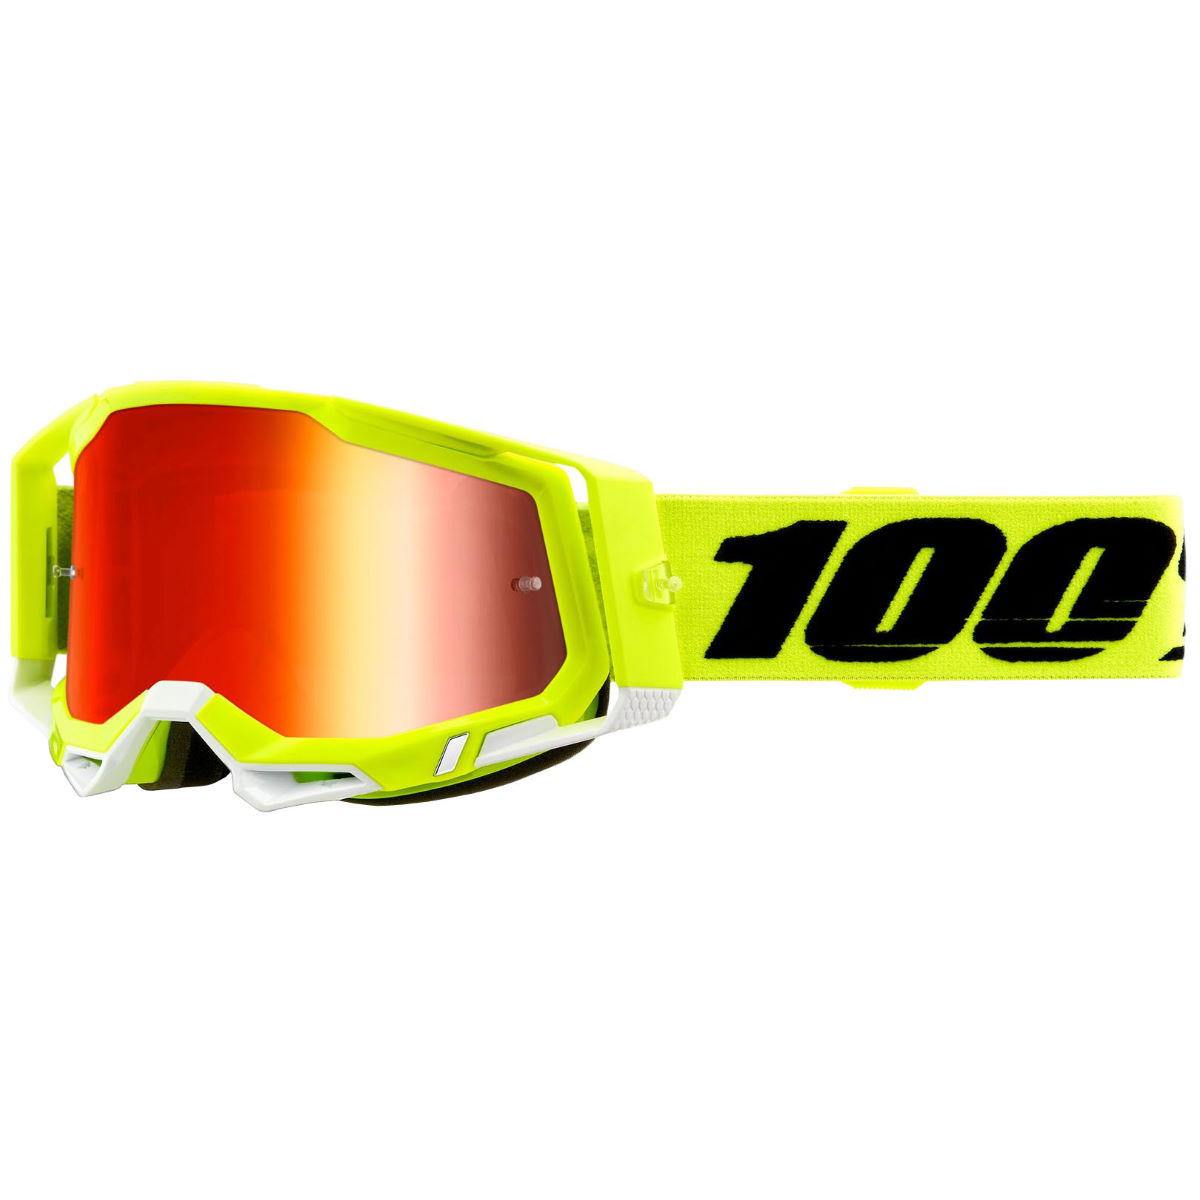 100% Racecraft 2 Mtb Goggles - One Size Yellow  Cycling Goggles